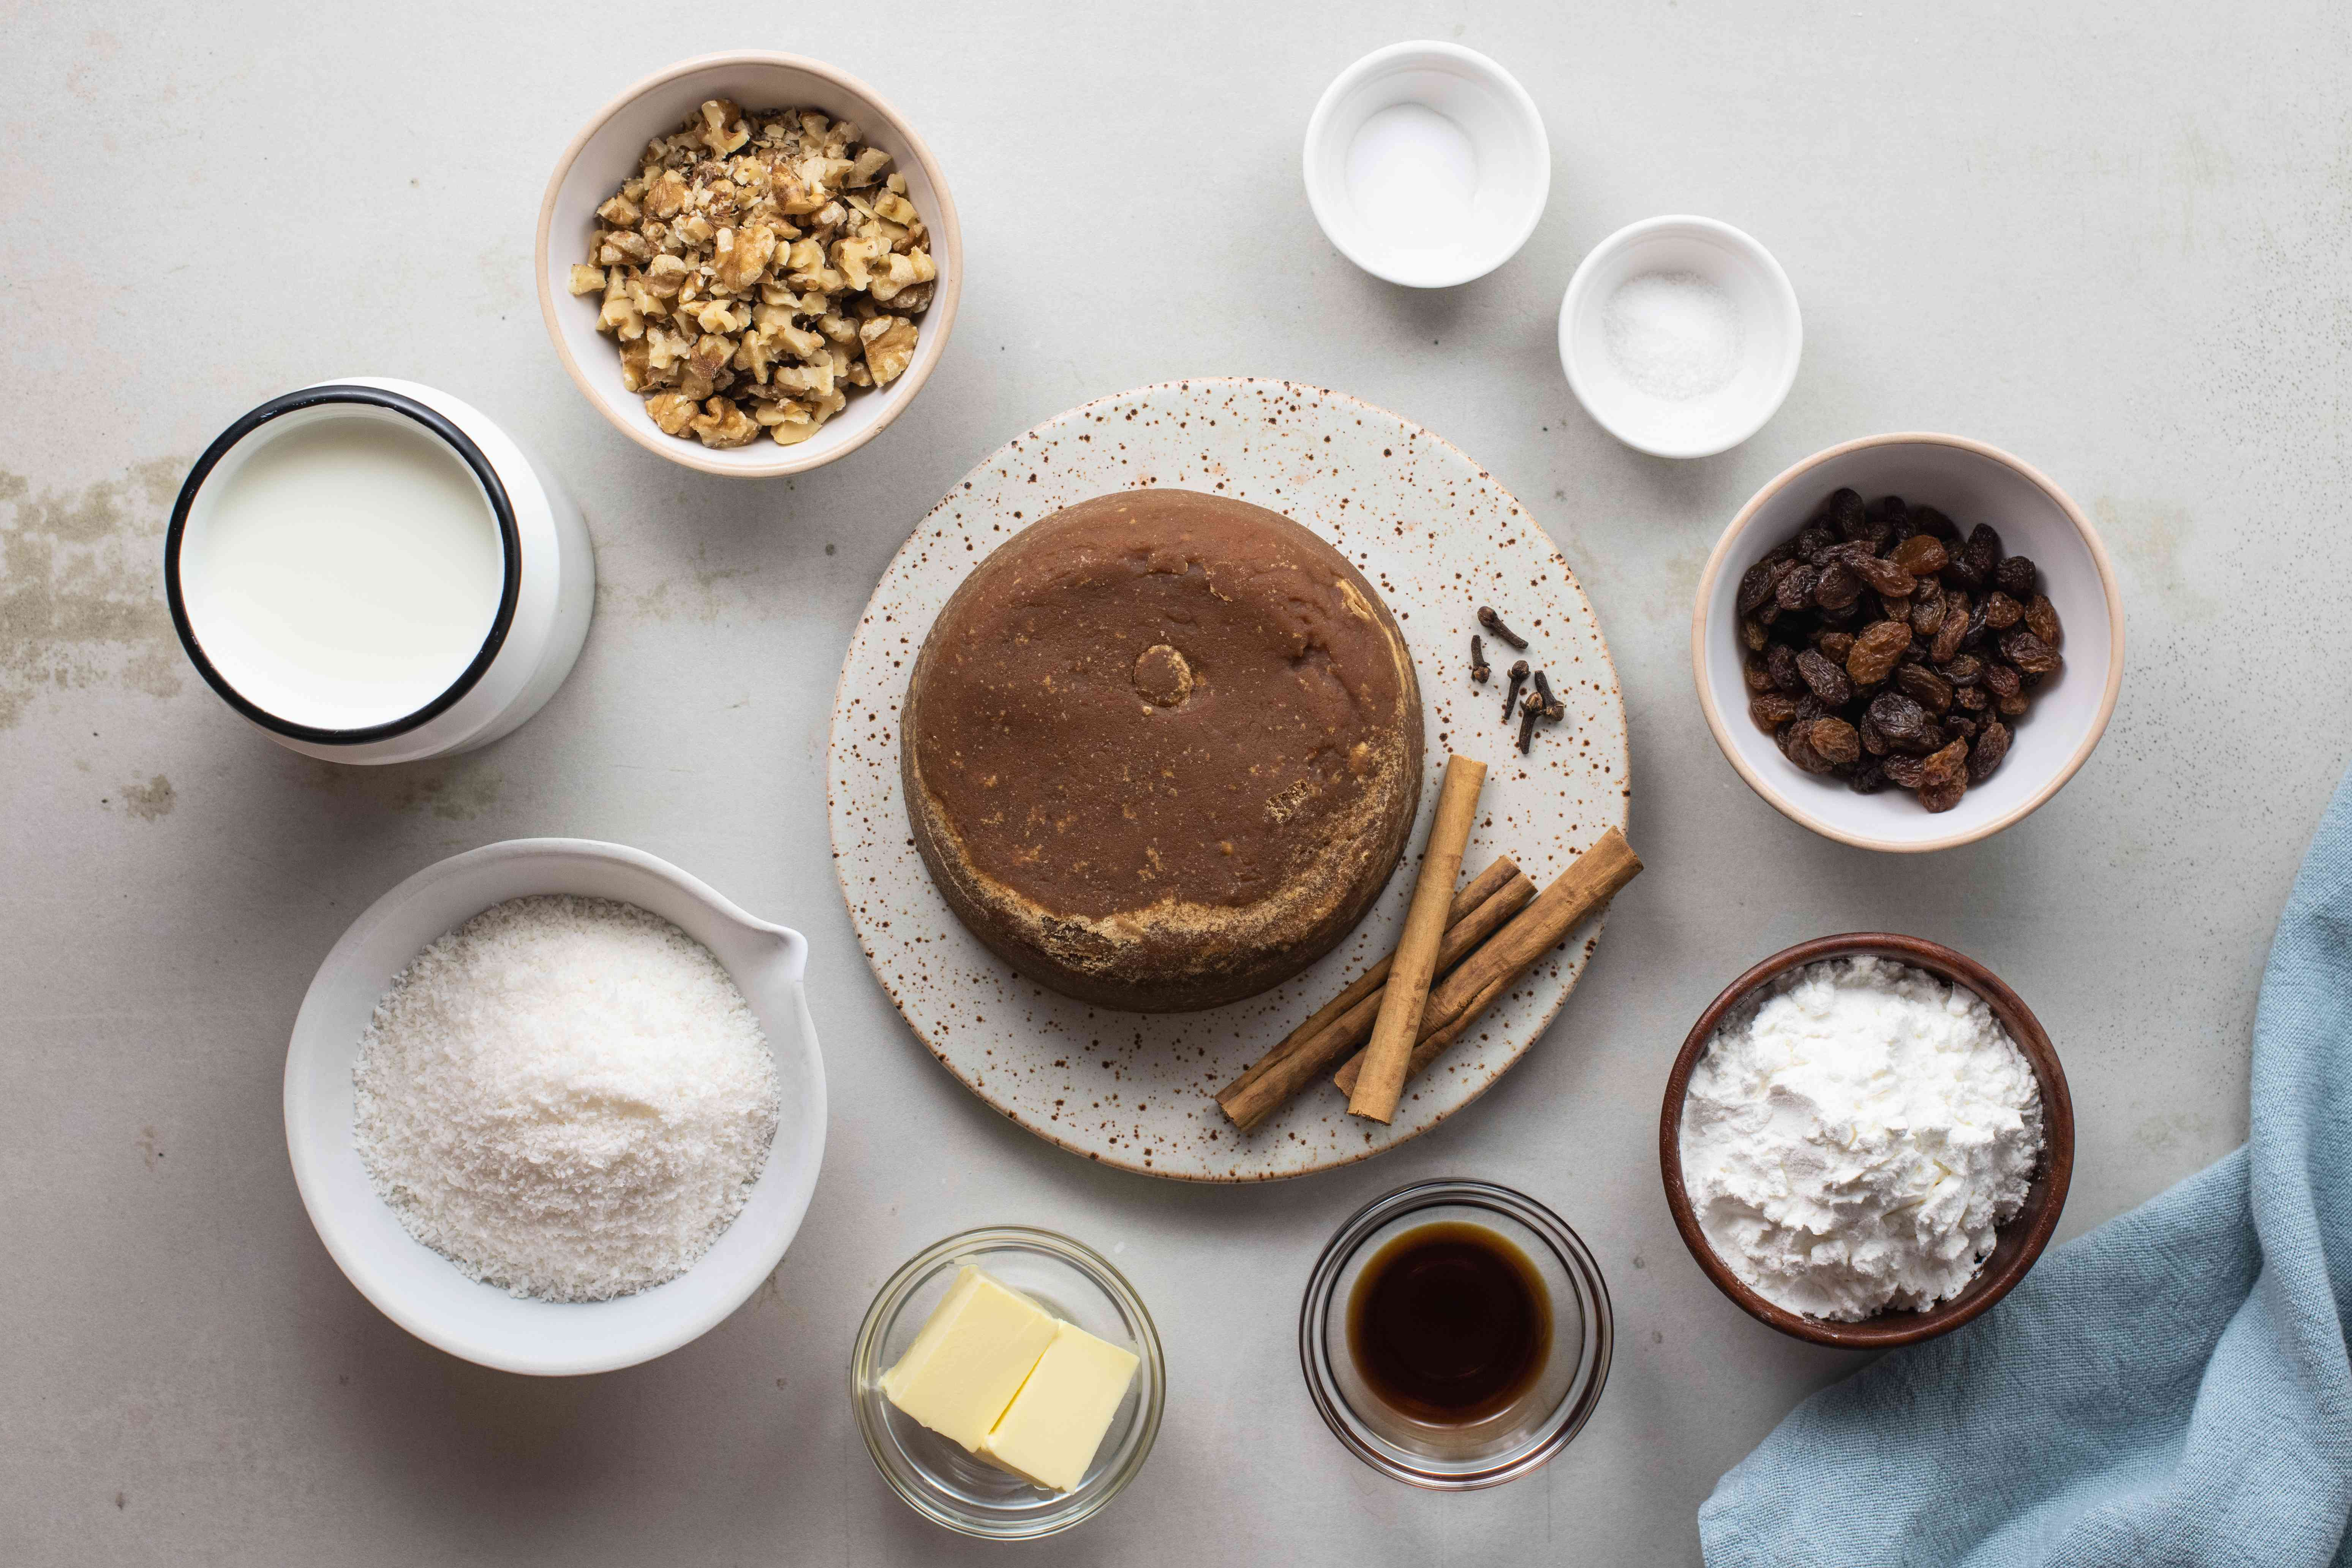 Ingredients for Natilla Colombian Christmas custard